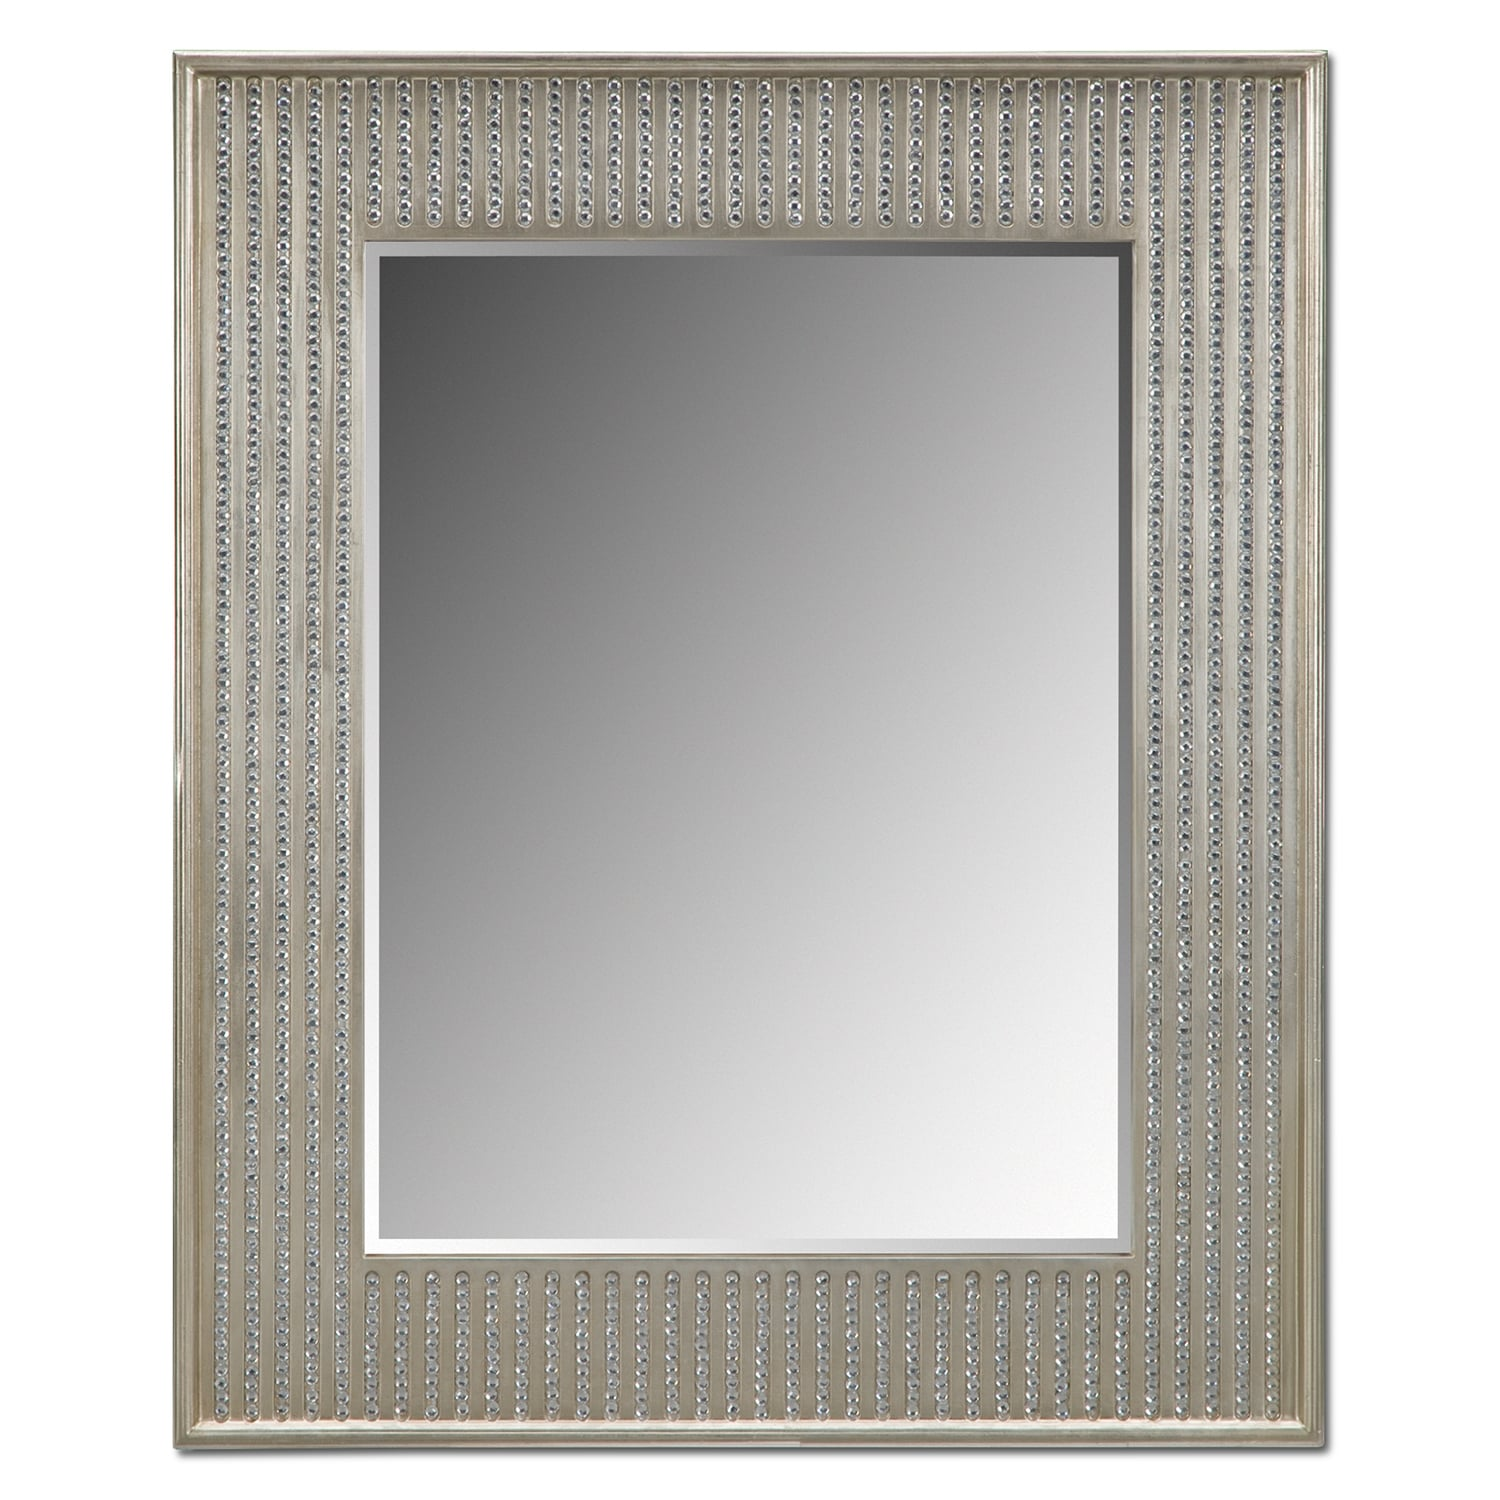 Bling Glam Mirror